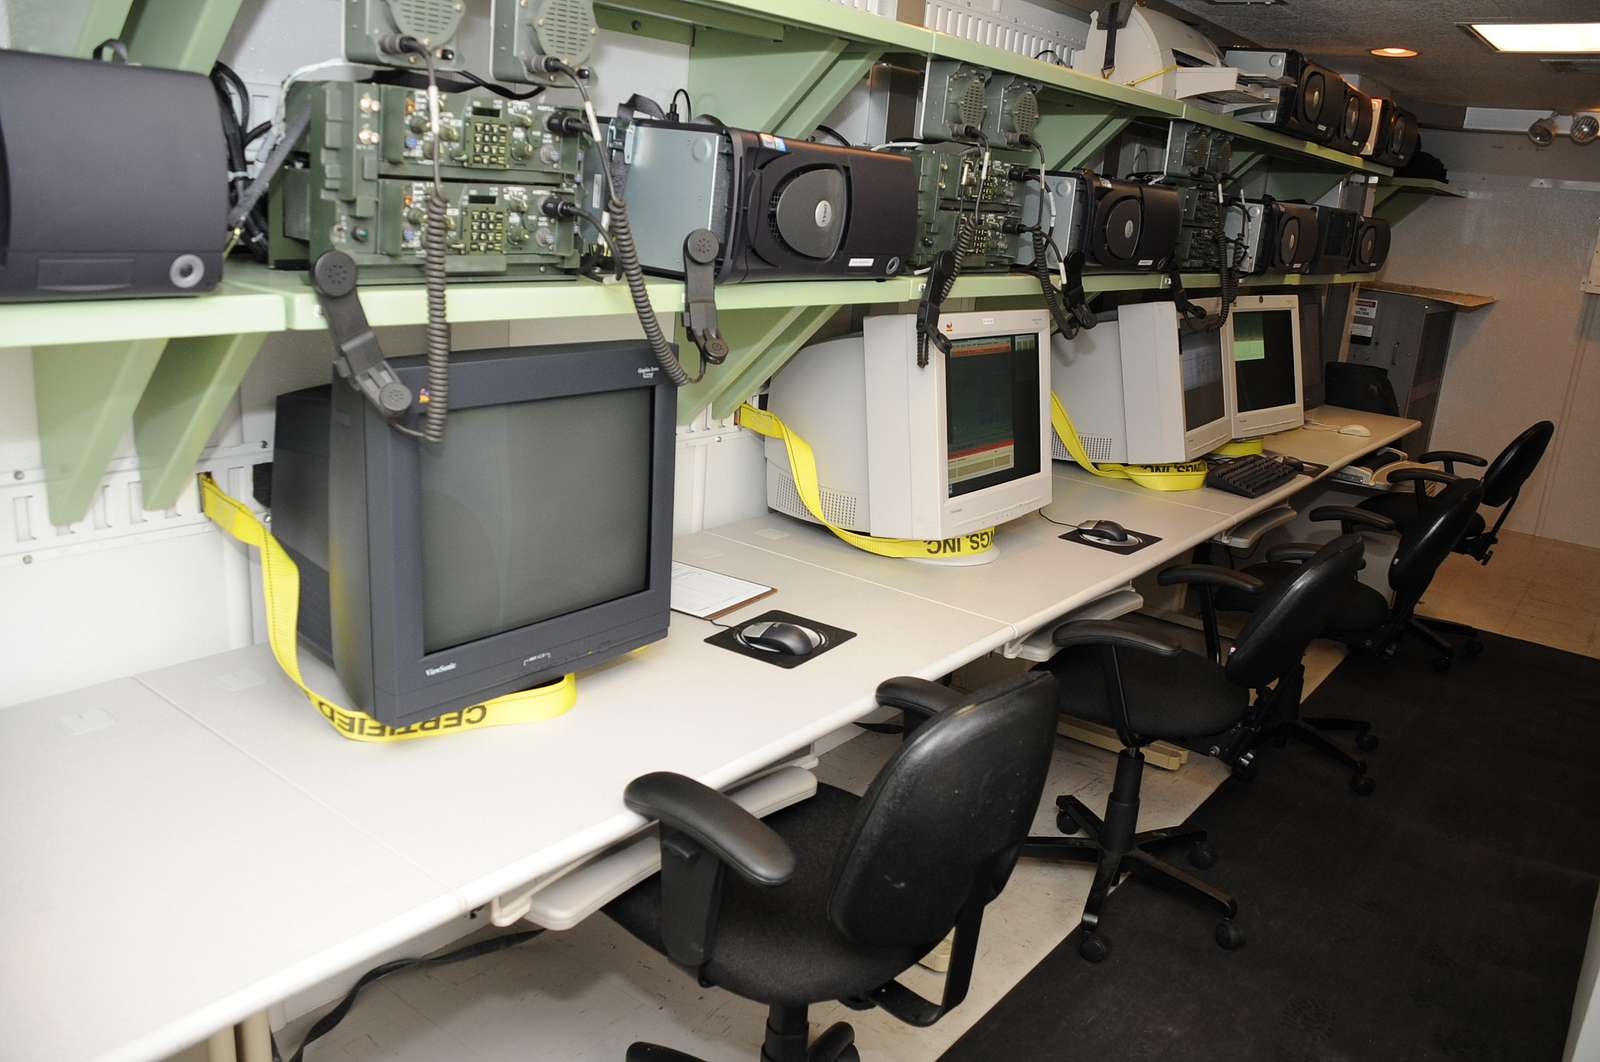 An image of the student instructor operator station